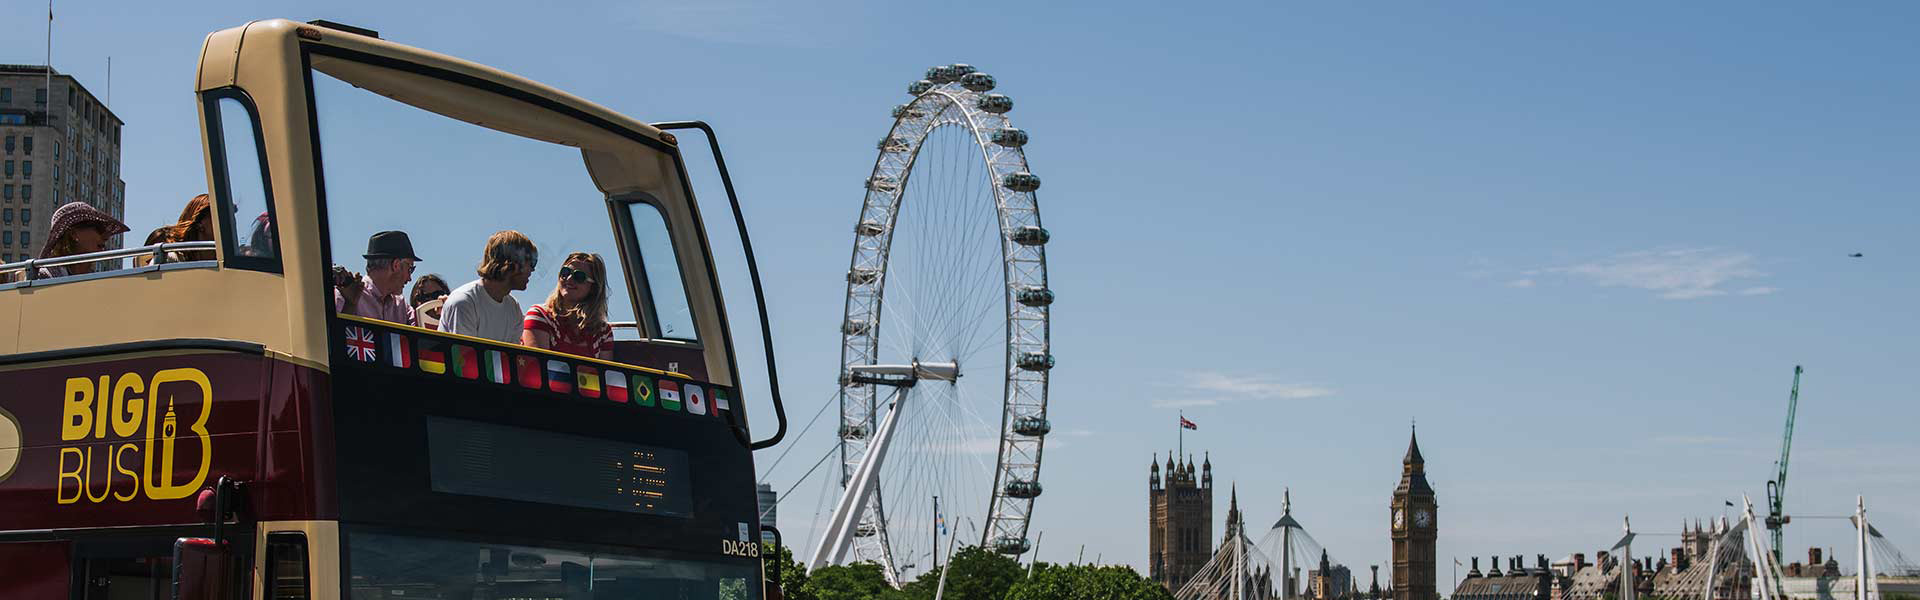 Big Bus Tours passing in front of London Eye